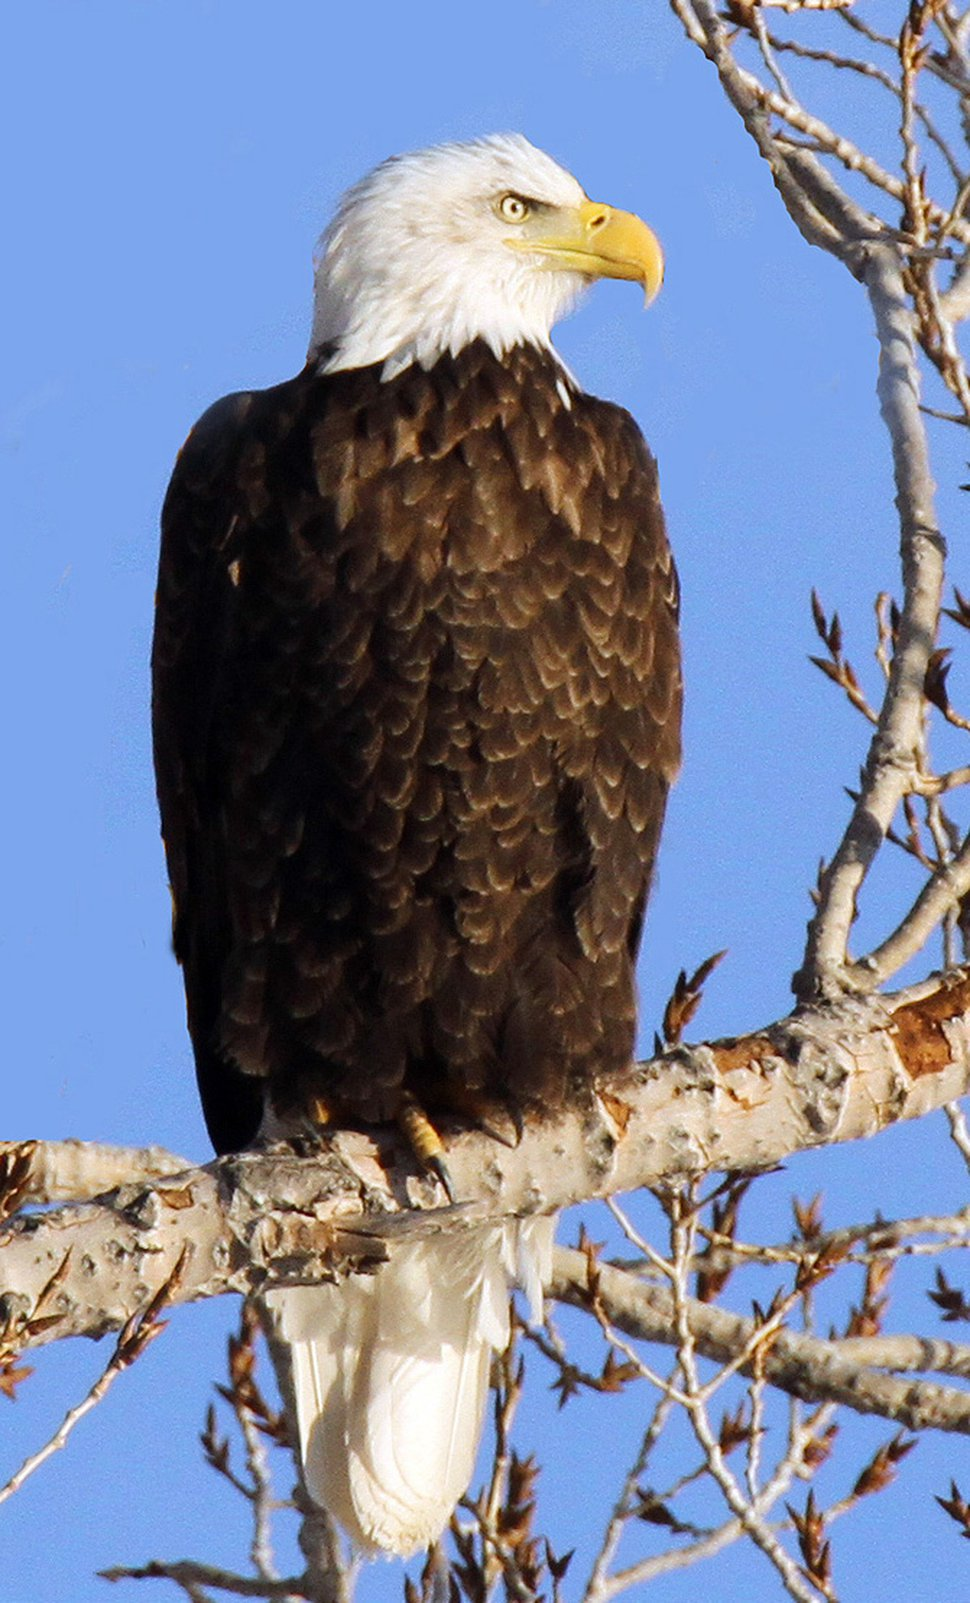 (Courtesy of the Utah Division of Wildlife Resources) February is the perfect time to view bald eagles in Utah. You can see eagles at five viewing sites during Bald Eagle Month.